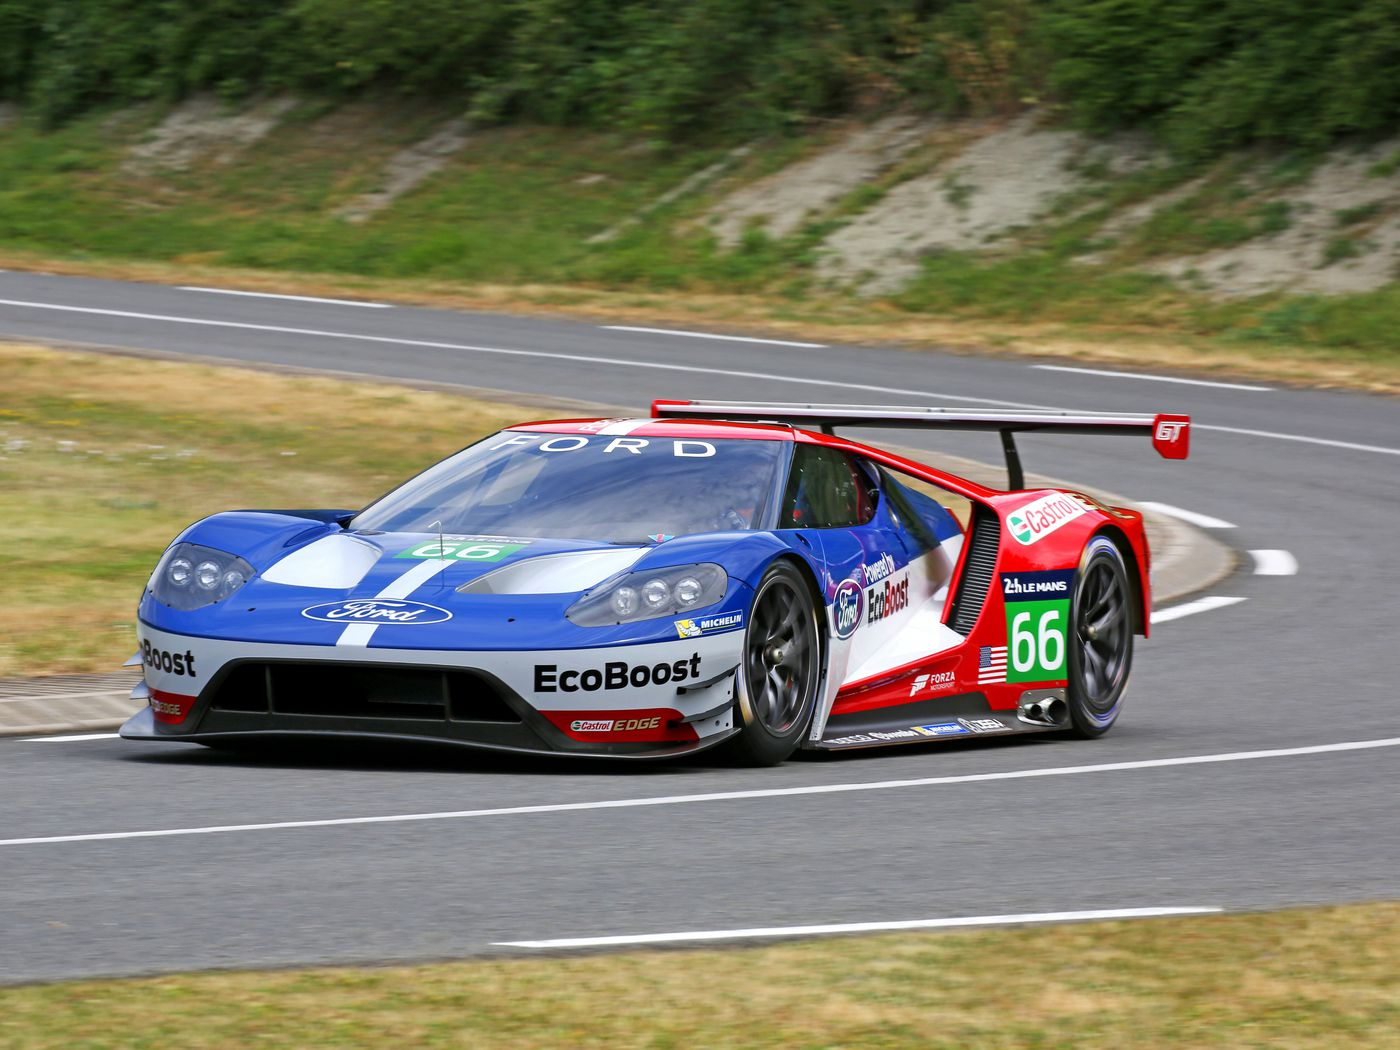 It S Official The Ford Gt Is Entering Lemans In 2016 The Verge